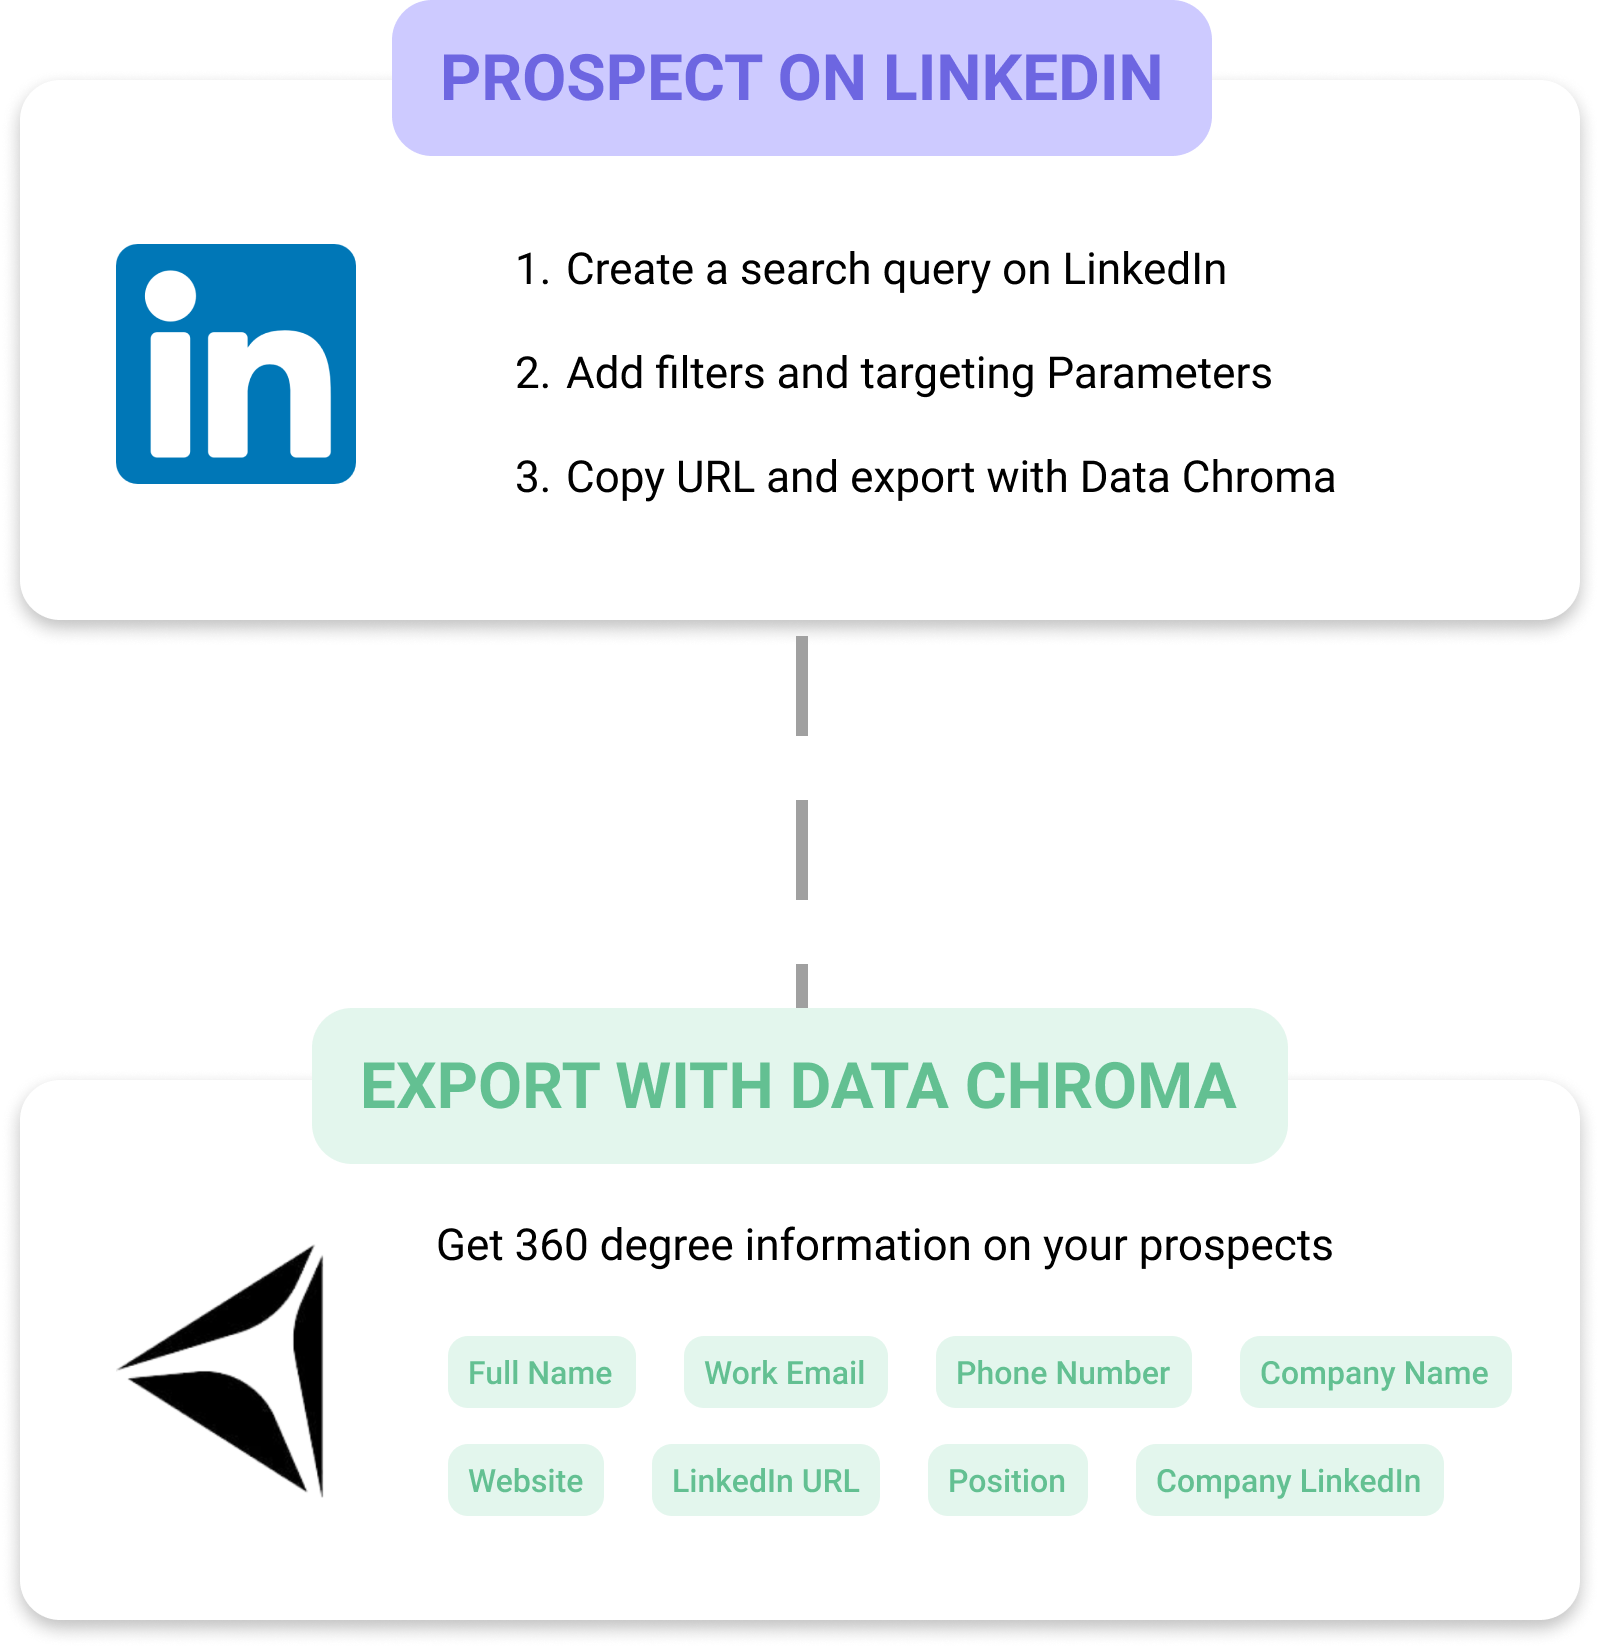 Supercharged B2B Prospecting with LinkedIn and Data Chroma